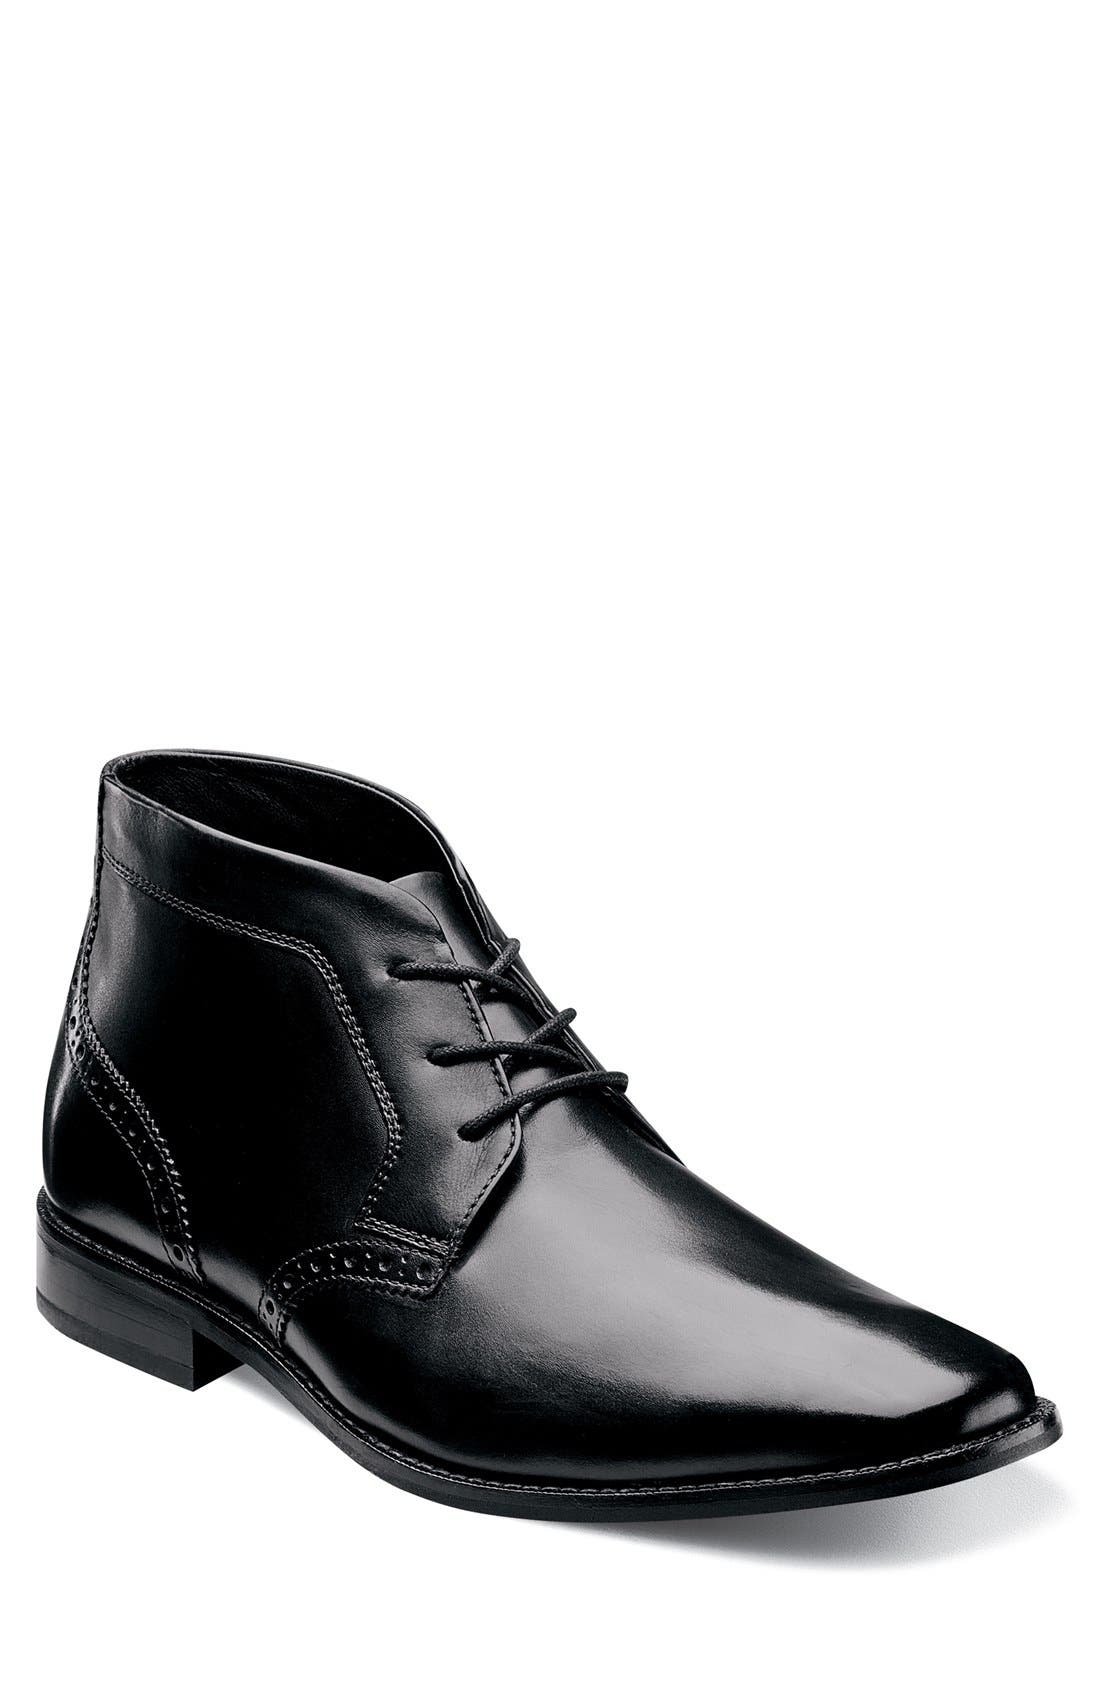 Main Image - Florsheim 'Castellano' Chukka Boot (Men)